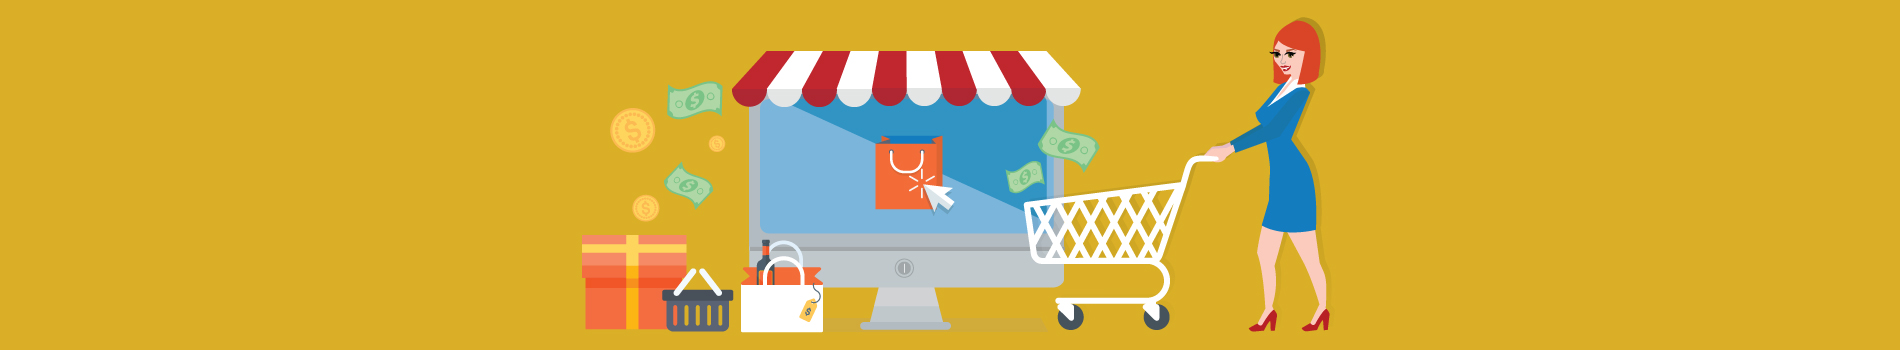 Graphic design of lady with shopping cart in front of store with money falling